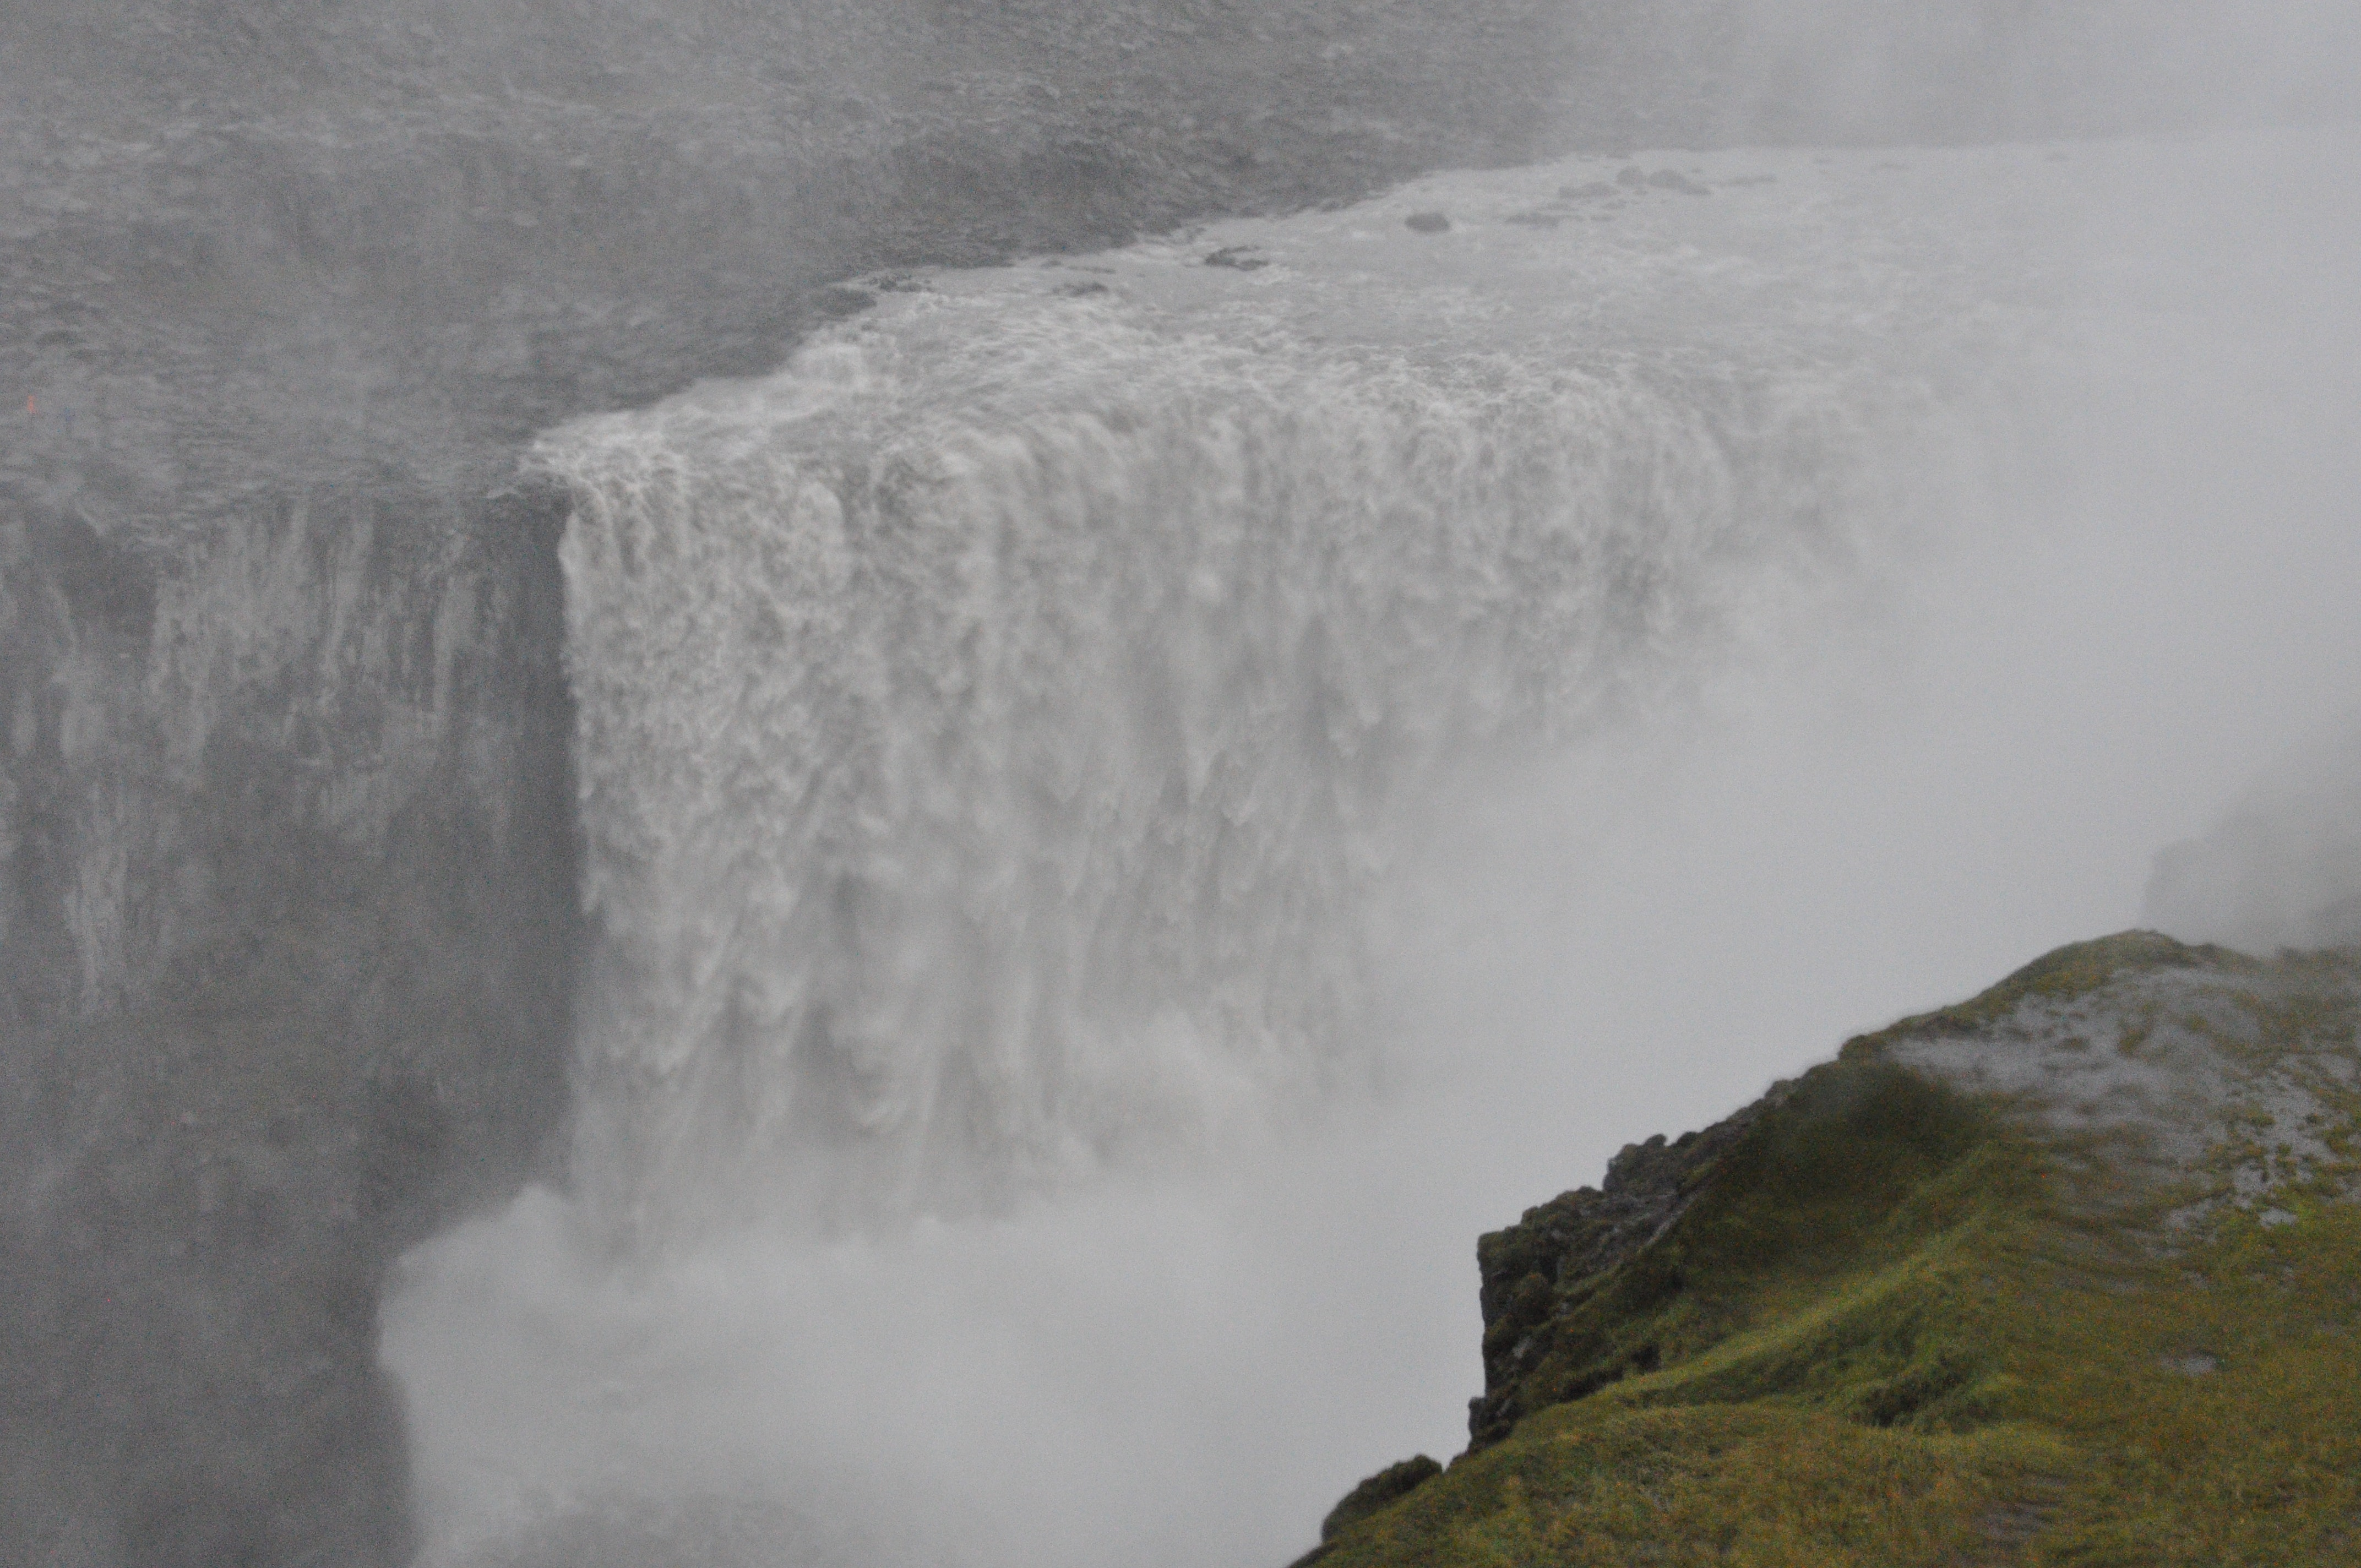 Dettifoss waterfall in north Iceland